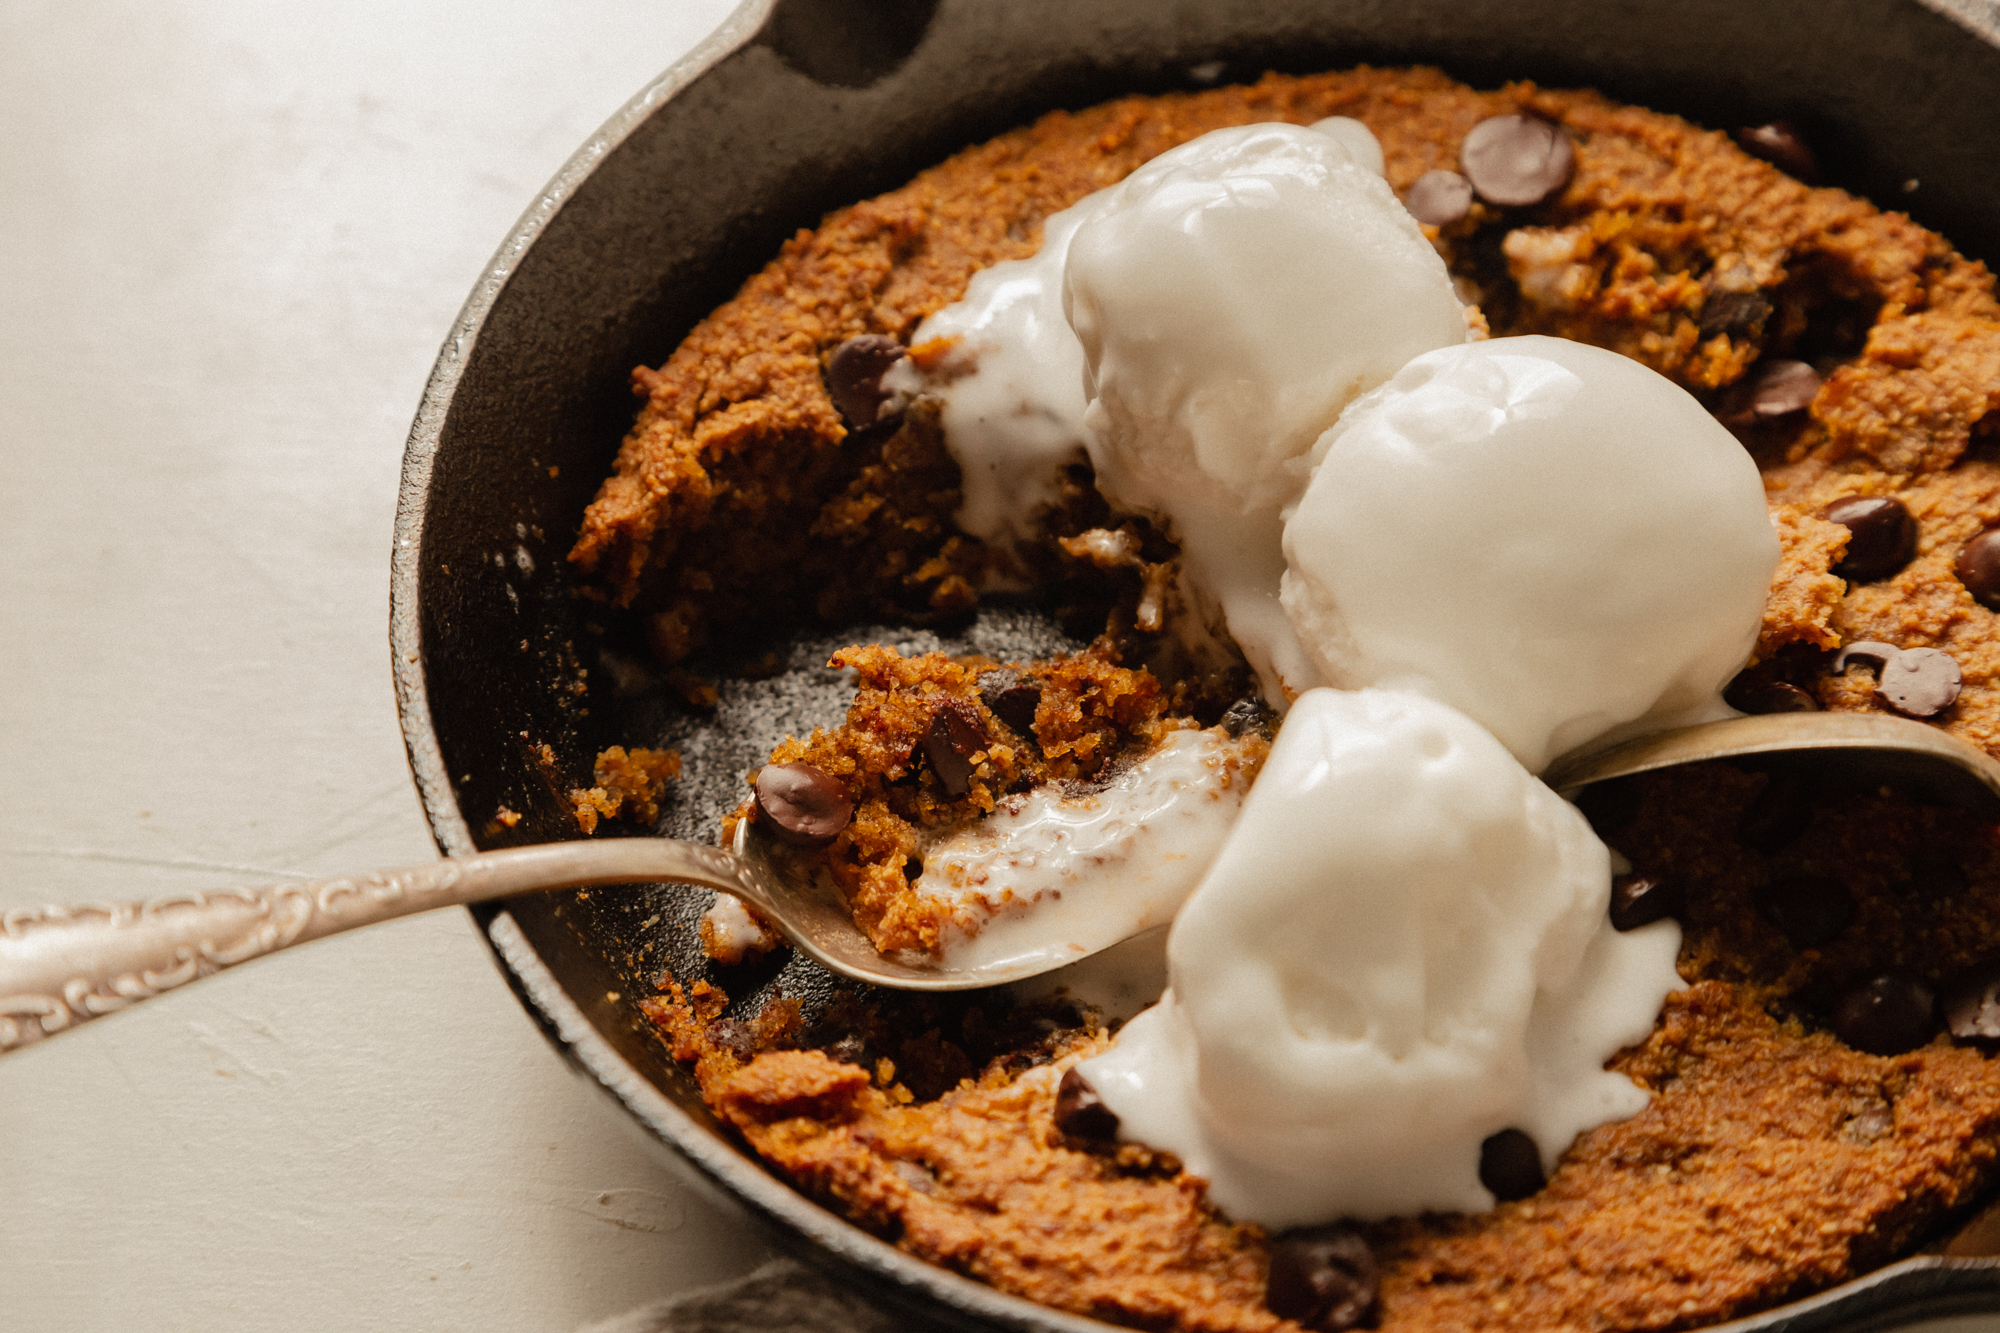 A 3/4 angle shot of a slightly orange pumpkin chocolate chip skillet cookie topped with 3 scoops of vanilla ice cream. The ice cream is melt-y and several bites have been taken out of the cookie.